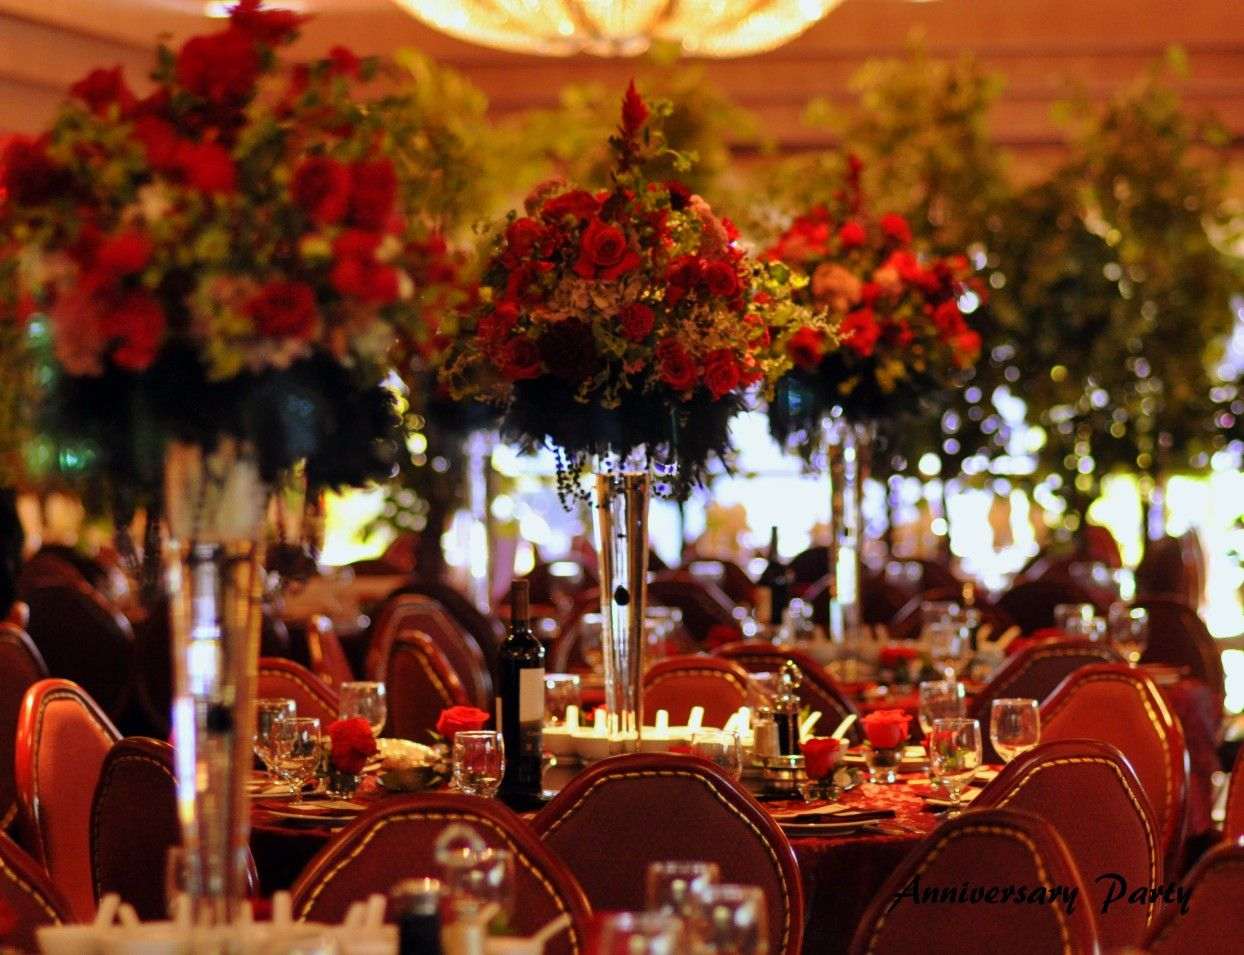 Good Elegant Christmas Party Ideas Part - 5: Beautiful Moment With Christmas Party Centerpiece Ideas : Awesome Christmas  Party Table Decoration Ideas With Floral Arrangements